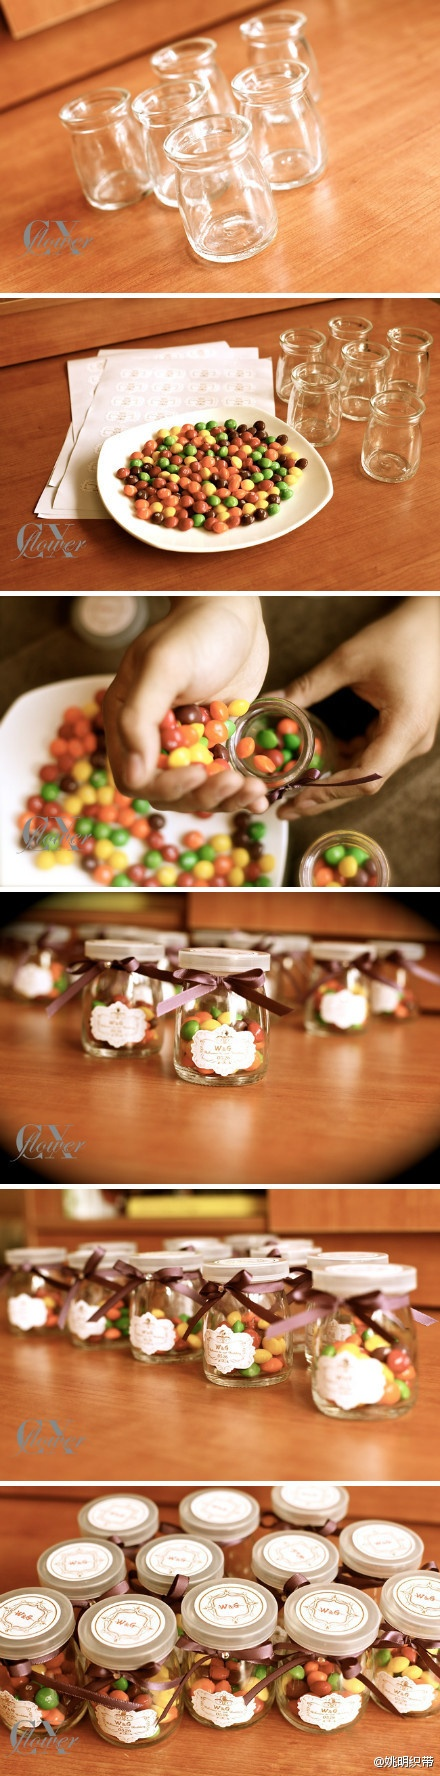 Want to make your own favours? Here's a good idea! Glass Jars- www.confetti.co.uk Ribbon & Labels- www.hobbycraft.co.uk